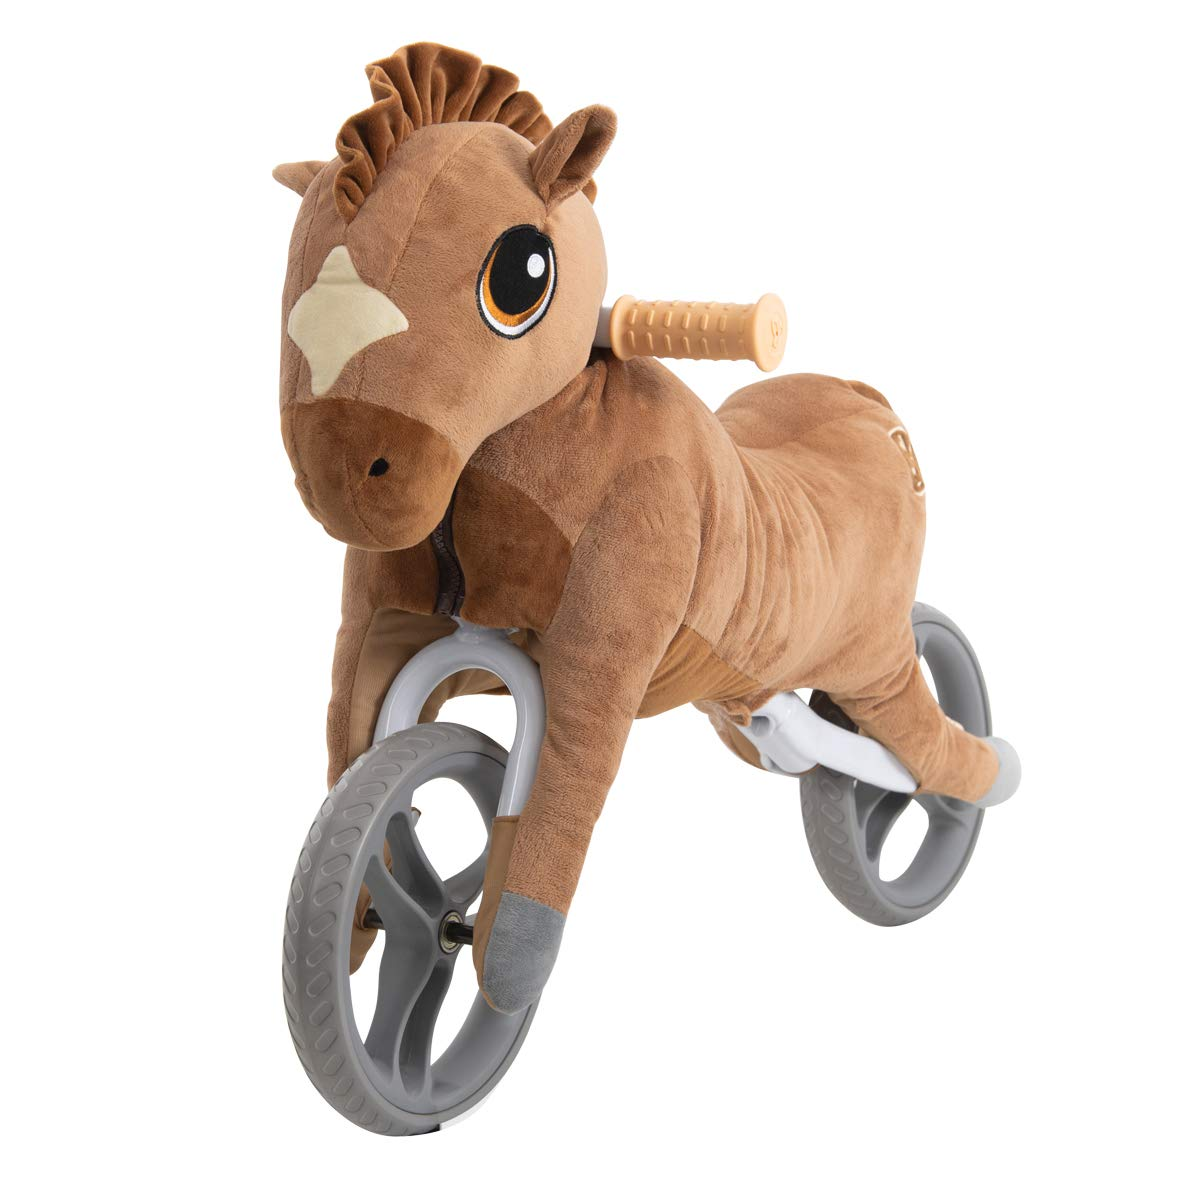 Yvolution My Buddy Wheels Dino Unicorn Horse Balance Bike with Plush Toy | Training Bicycle for Toddlers Age 2 Years + (Horse) by Yvolution